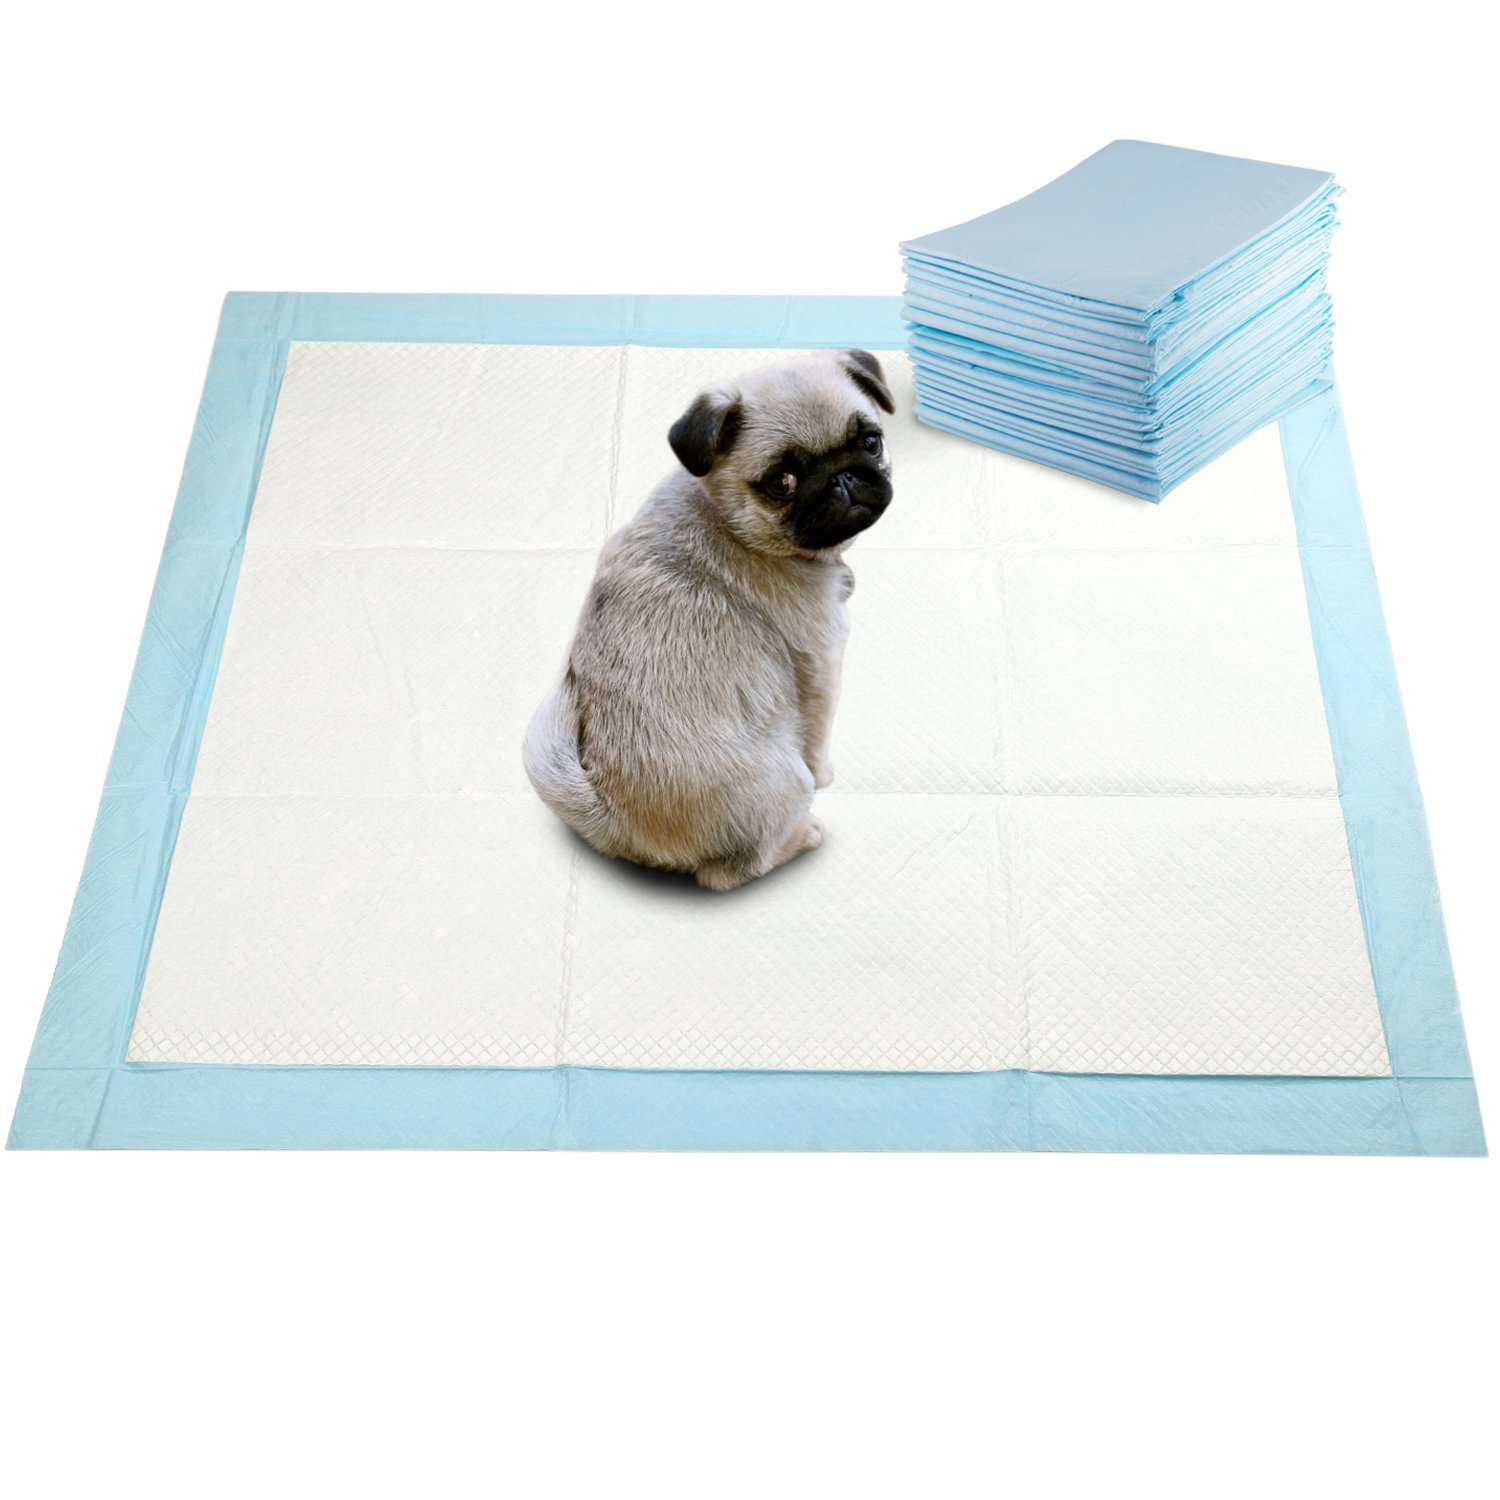 Go Buddy Super Absorbent Pet Training Puppy Pads 120 Count by GOBUDDY